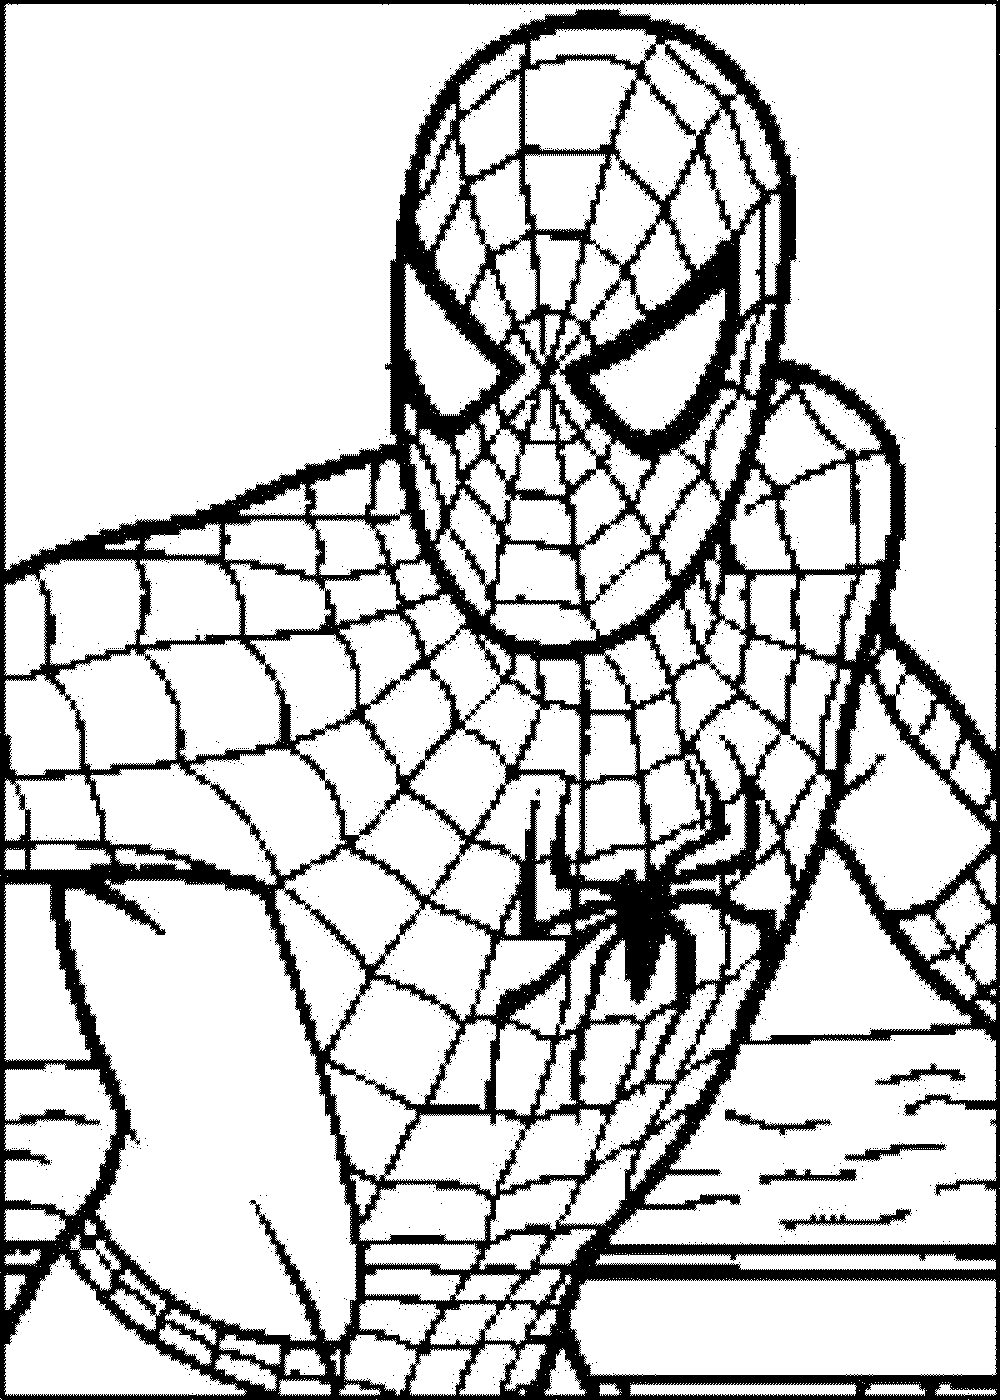 spiderman picture to color print download spiderman coloring pages an enjoyable spiderman picture color to